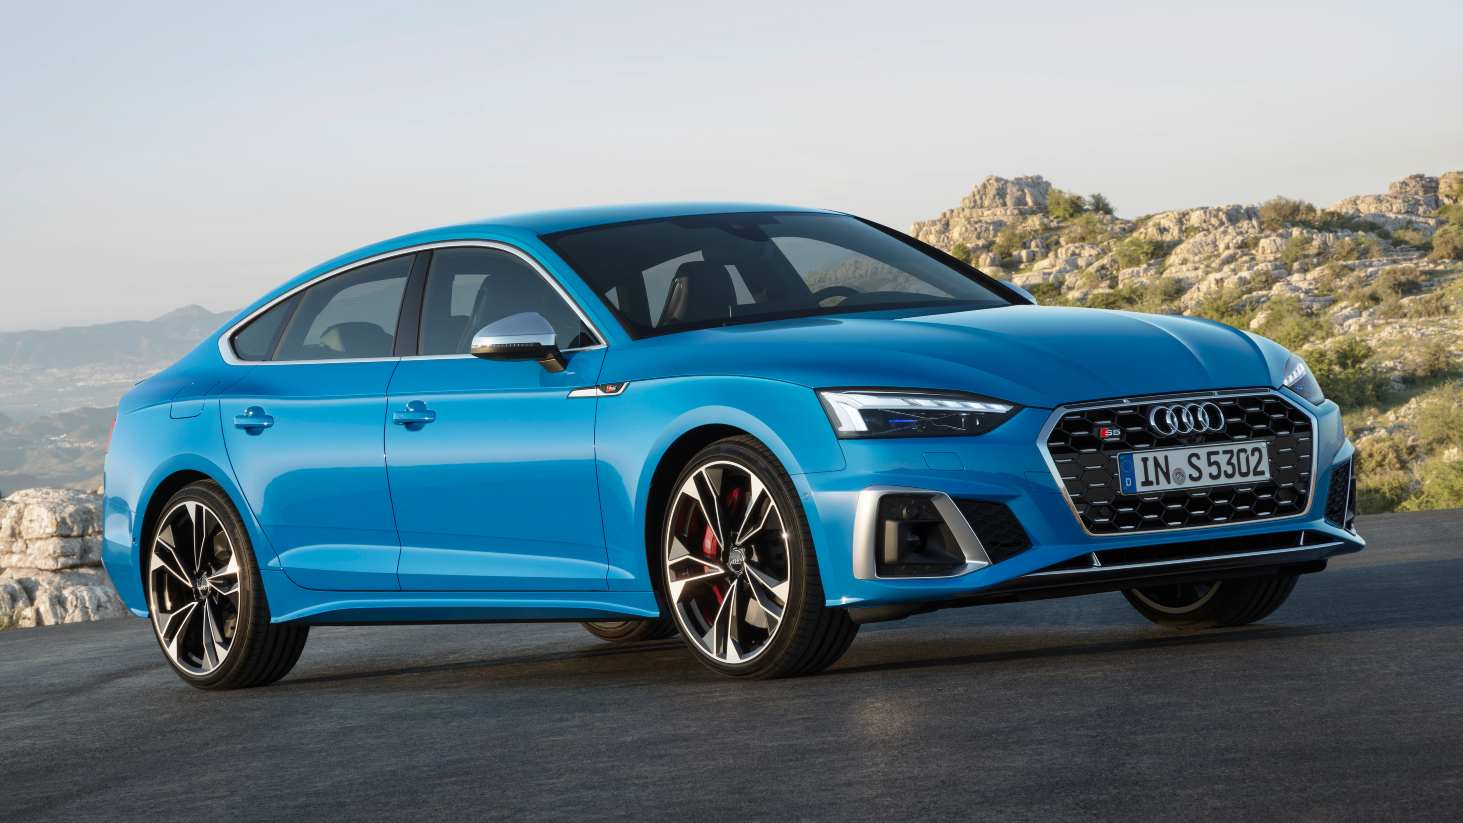 Audi S5 Sportback facelift to be launched in India on 22 March, gets 354 hp V6 petrol engine- Technology News, Gadgetclock